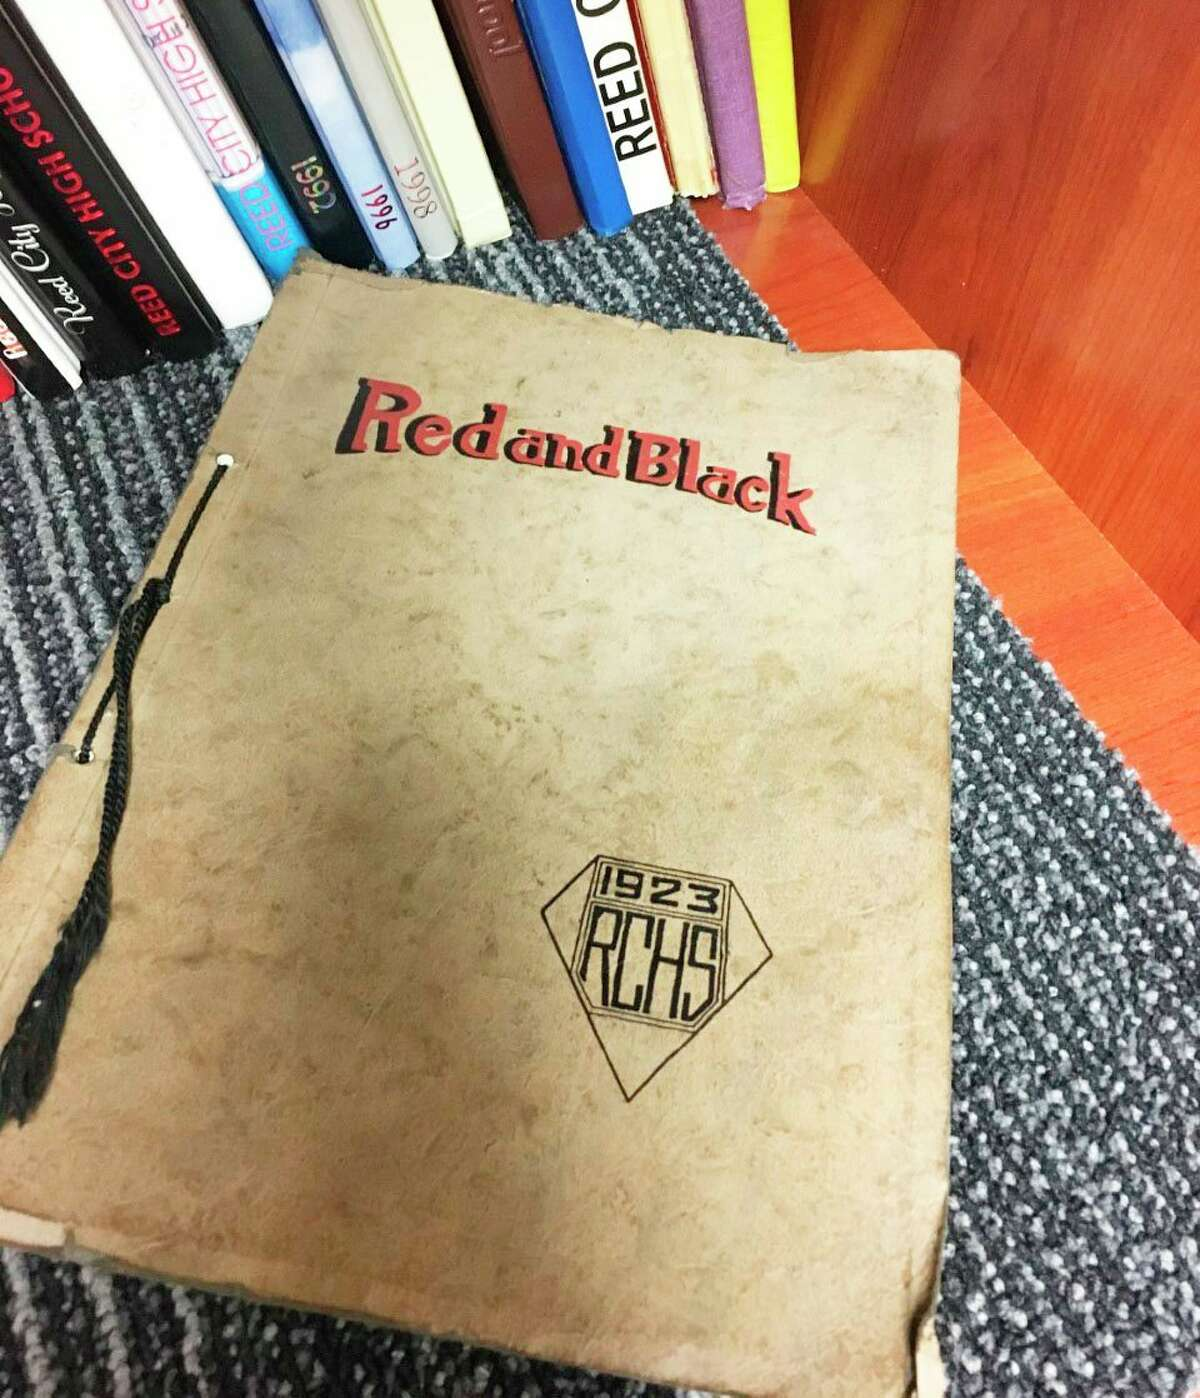 A Reed City High School yearbook published in 1923 was recently discovered by school staff during a deep clean of the school library. Despite signs of aging and some dog-eared pages, the yearbook remains in good condition. (Courtesy photo)